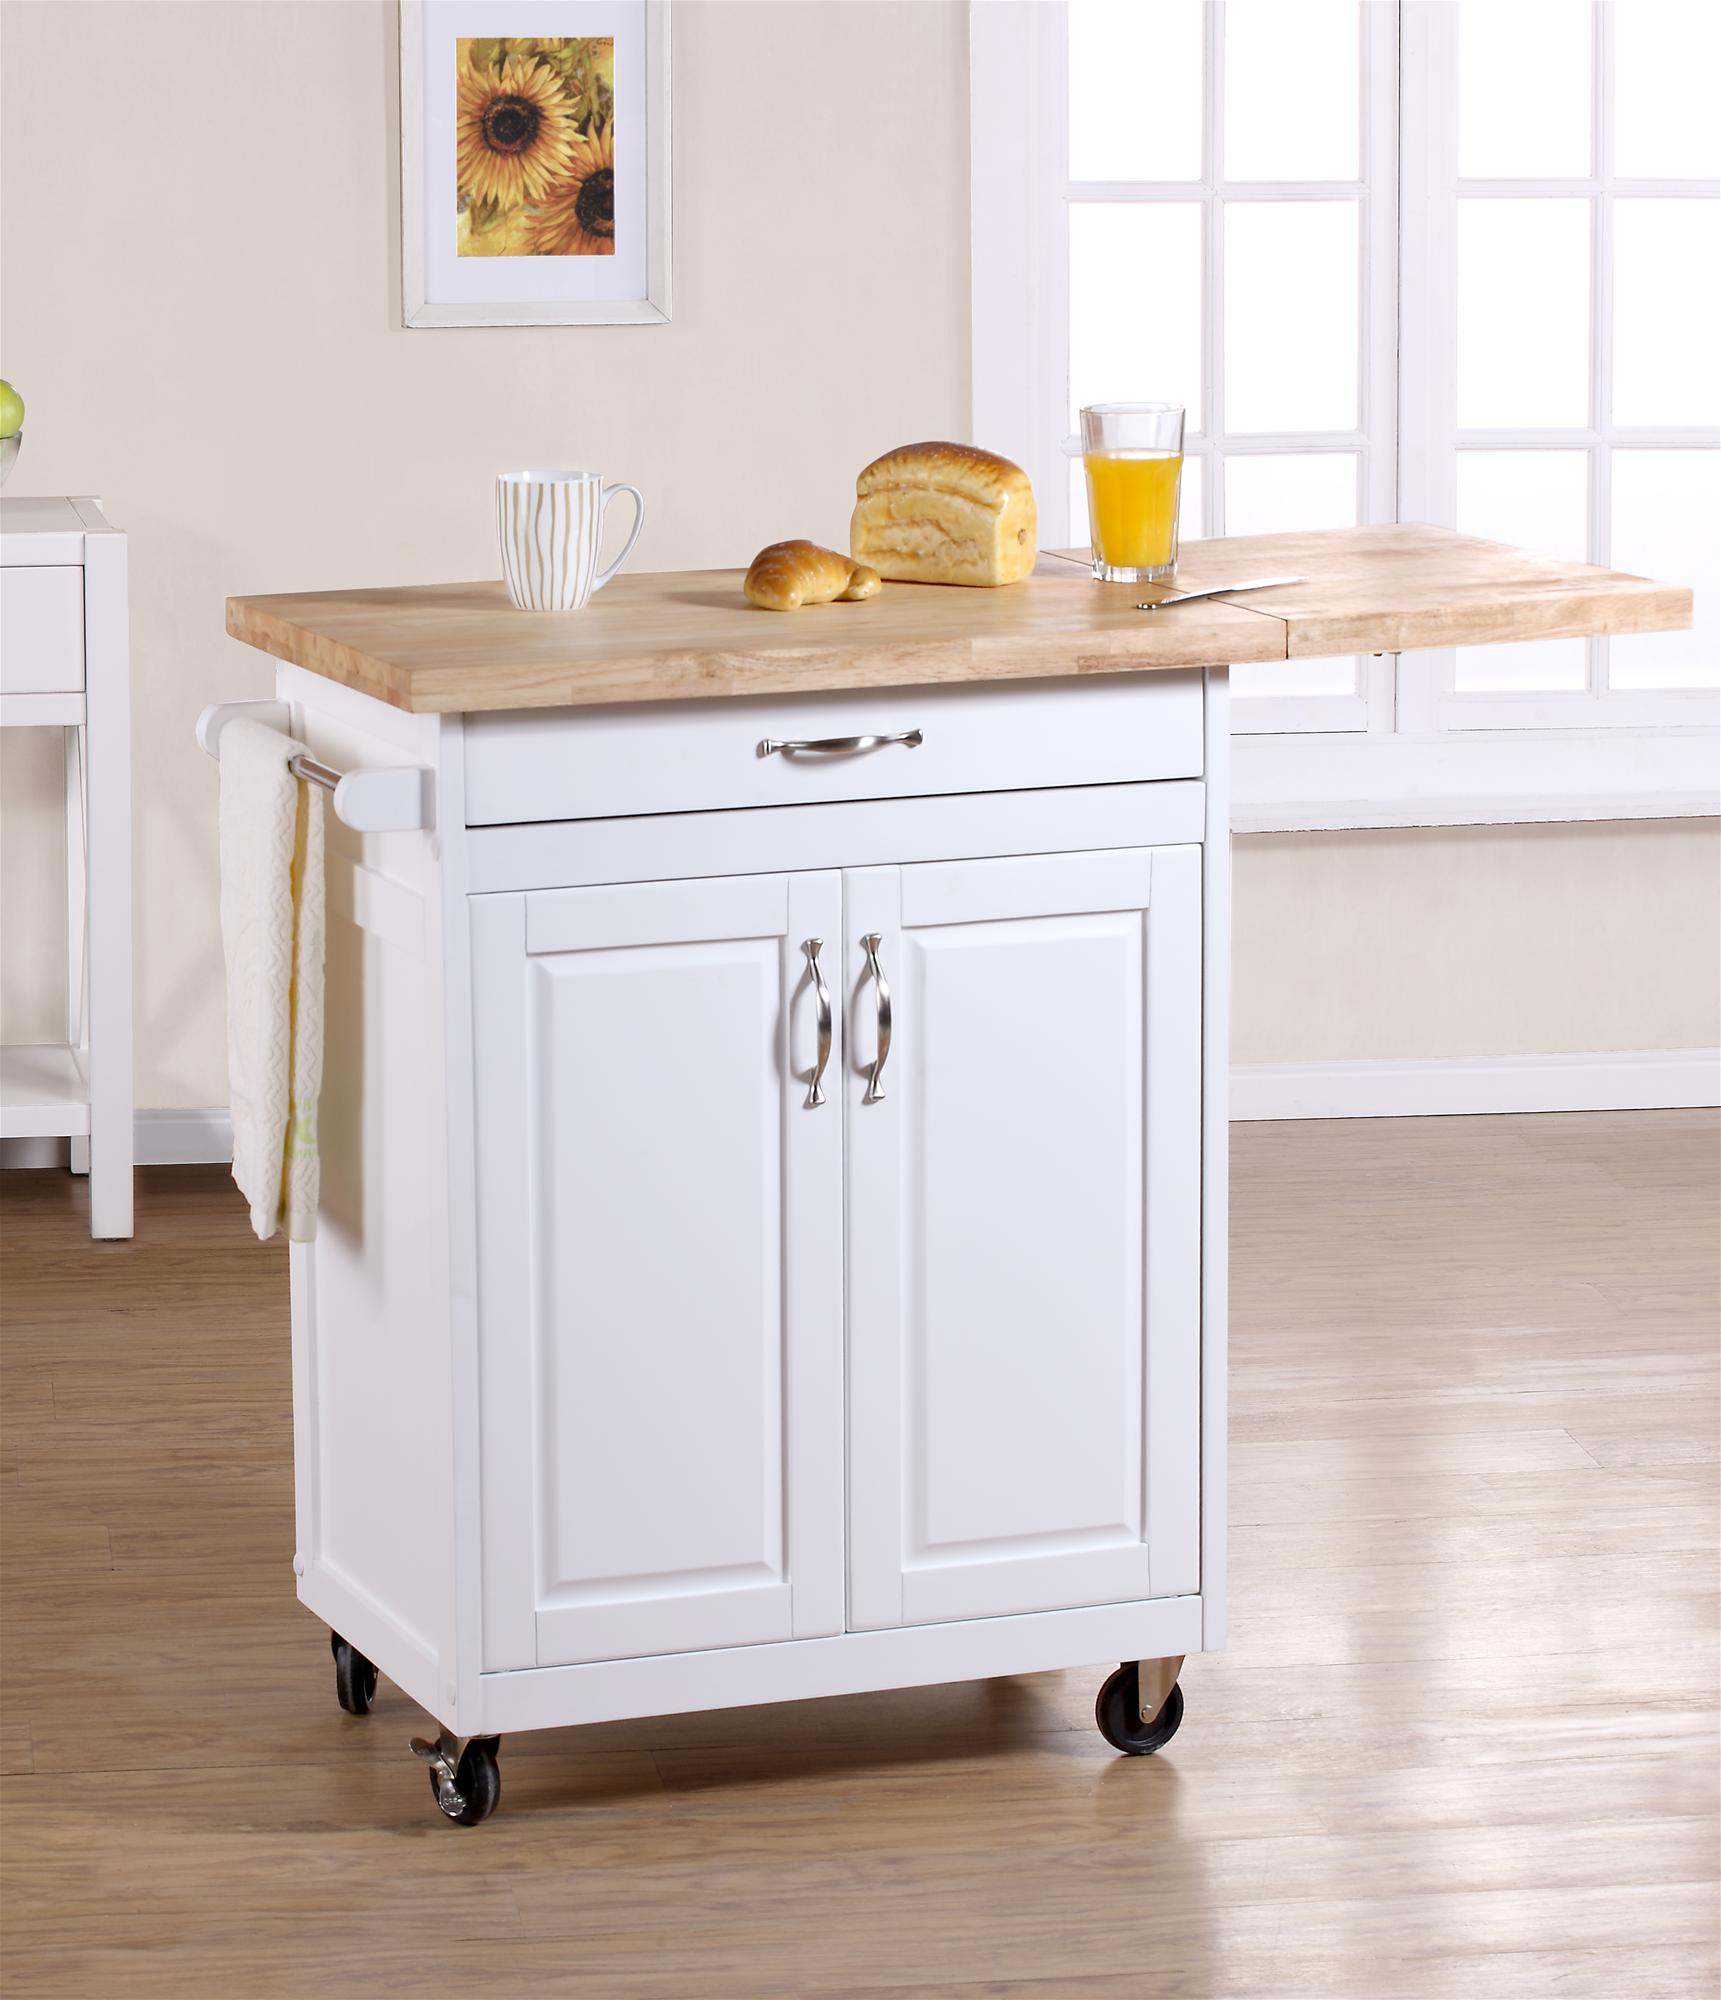 Portable Kitchen Island With Seating small portable kitchen island ideas with seating | home interior